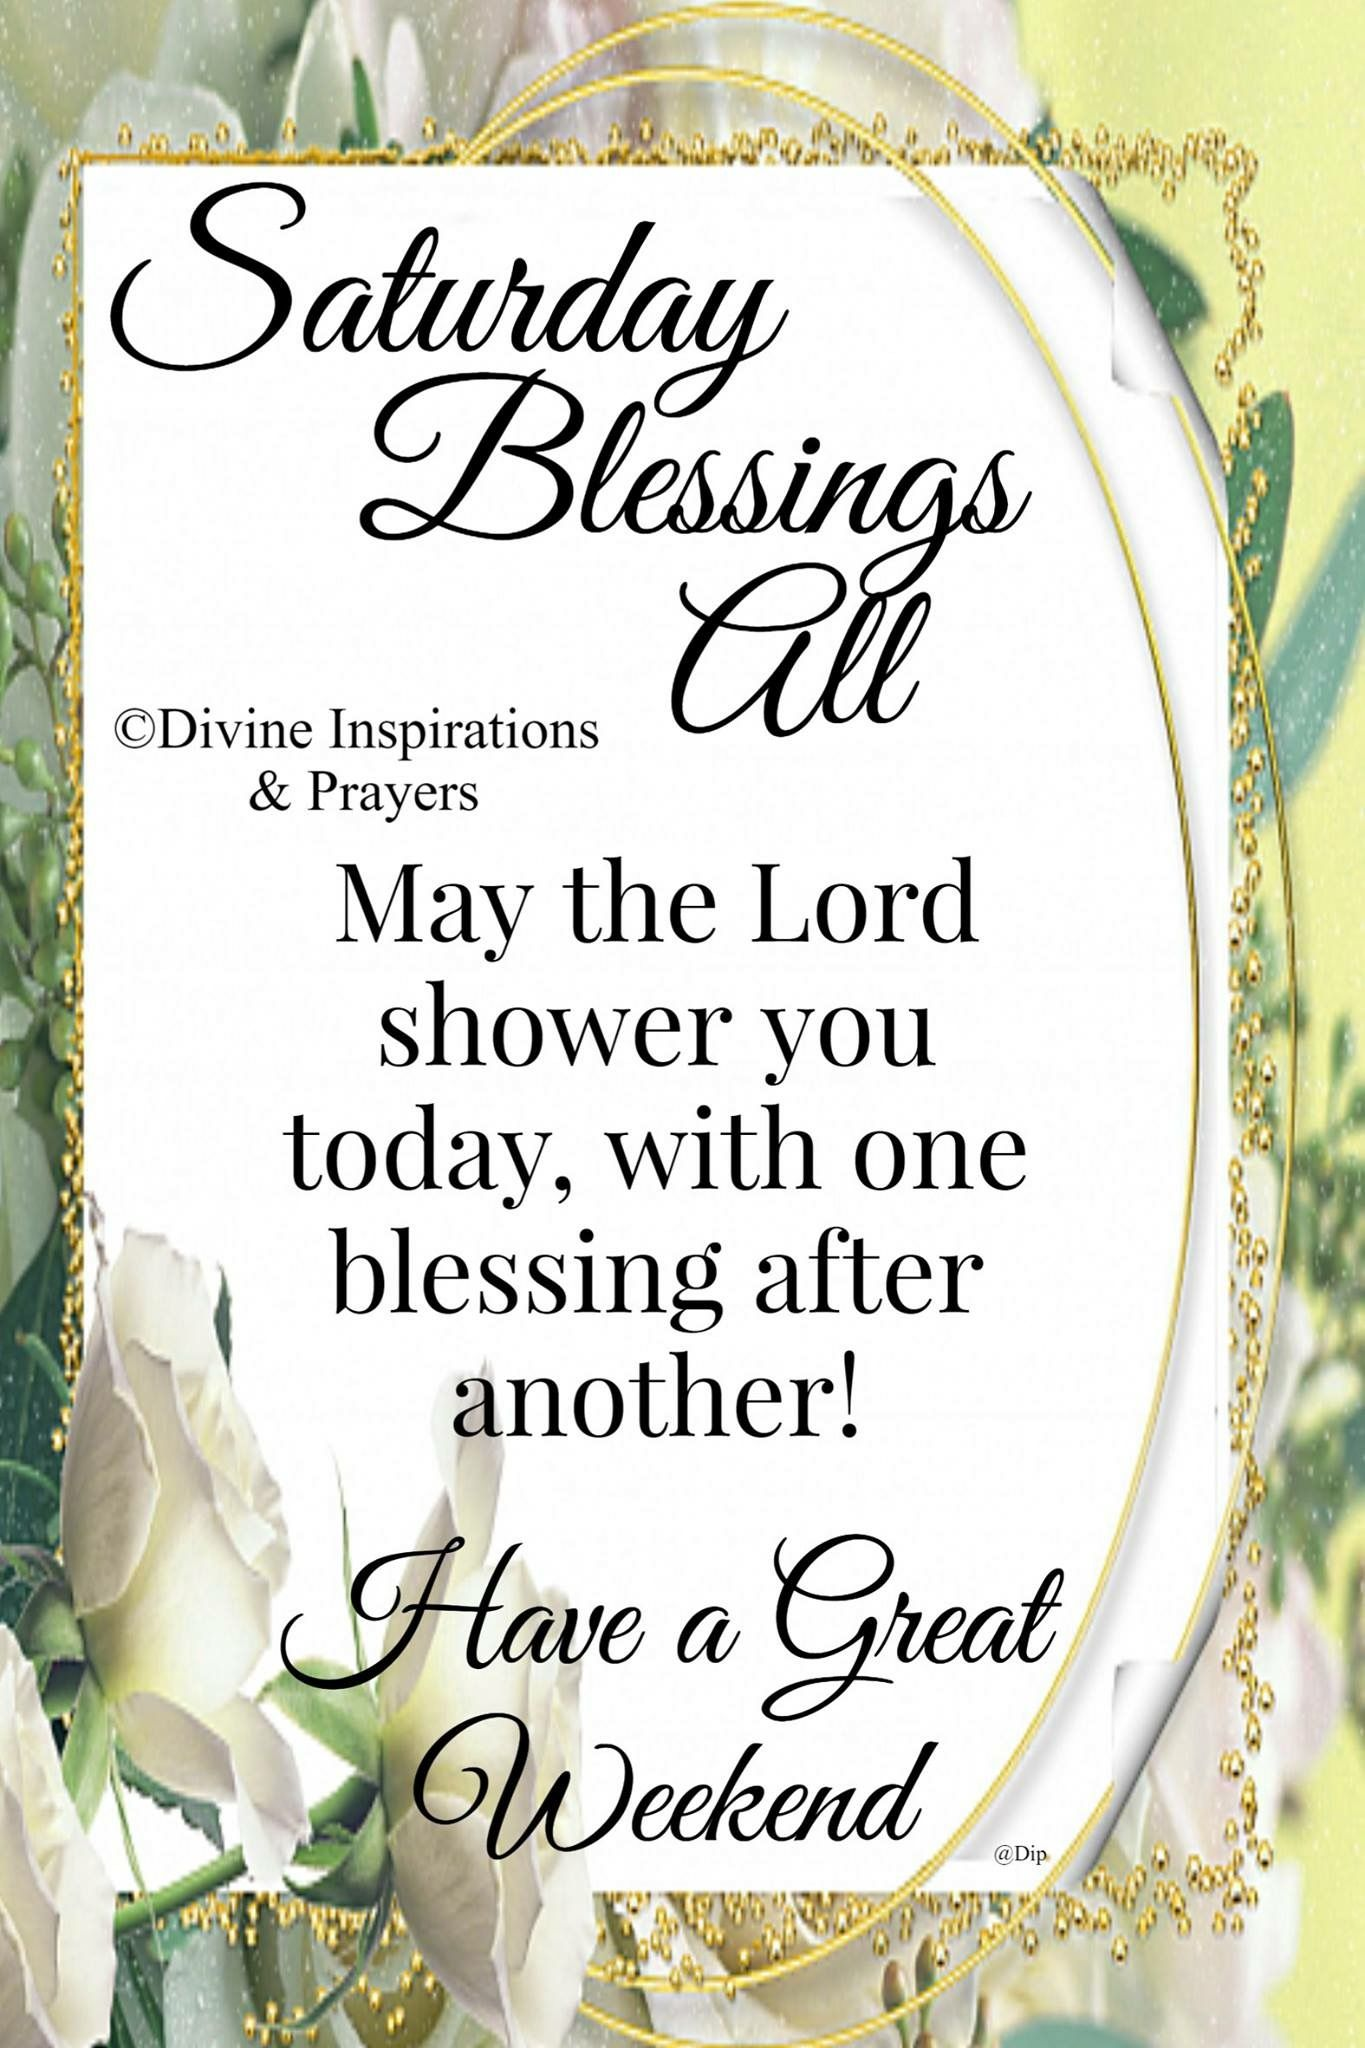 Saturday Blessings  Good morning friends quotes, Saturday morning